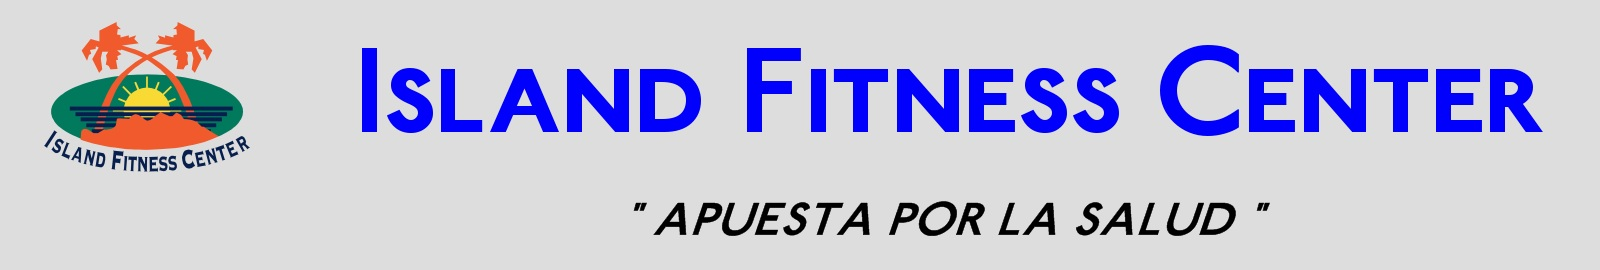 Island Fitness Center Zaragoza